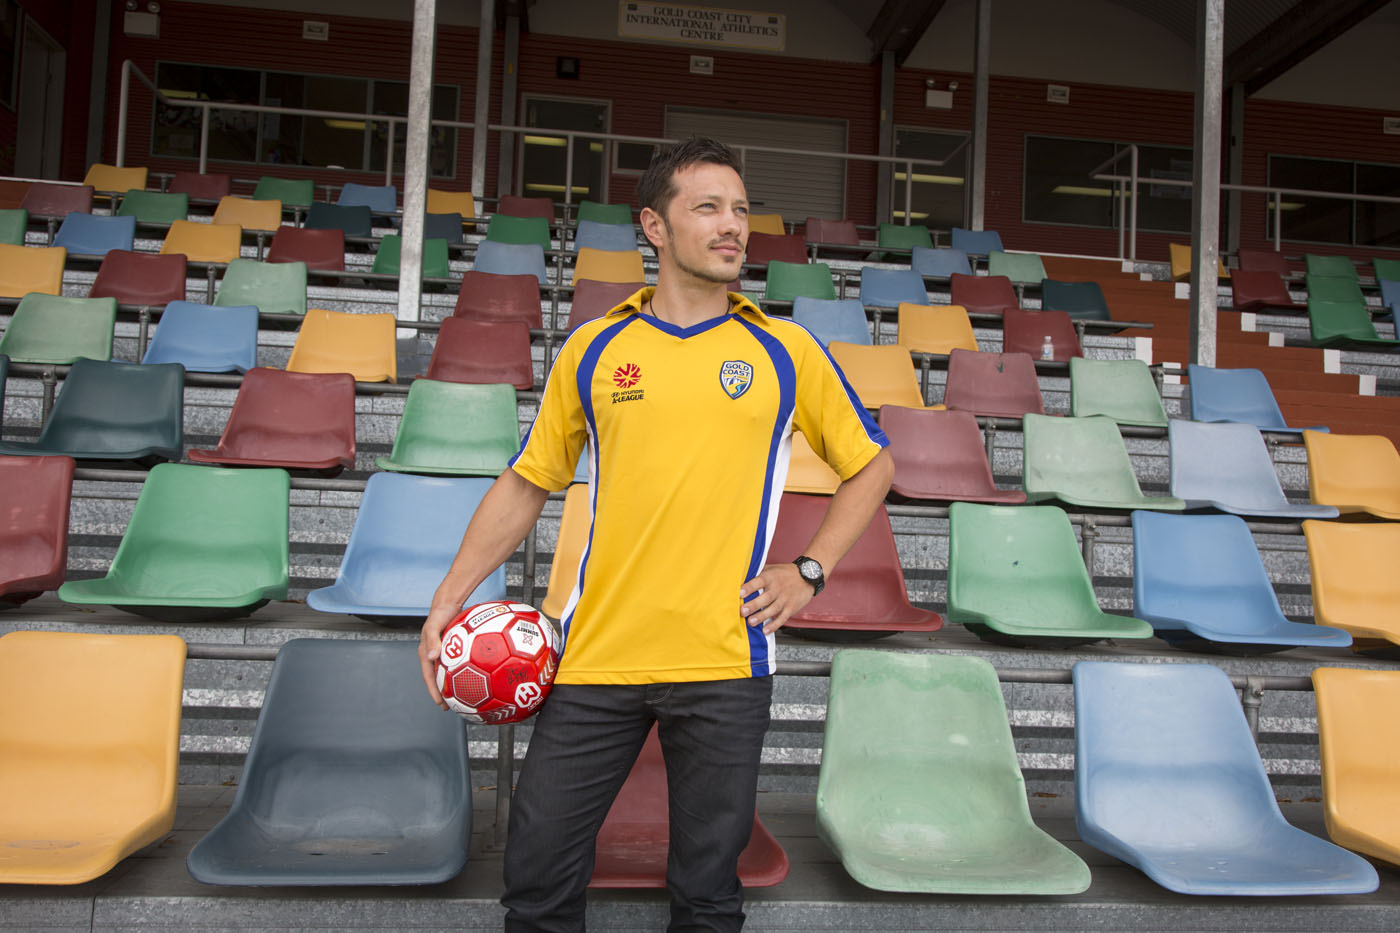 Thilo Kunkel in football jersey holding football at Griffith University sports track